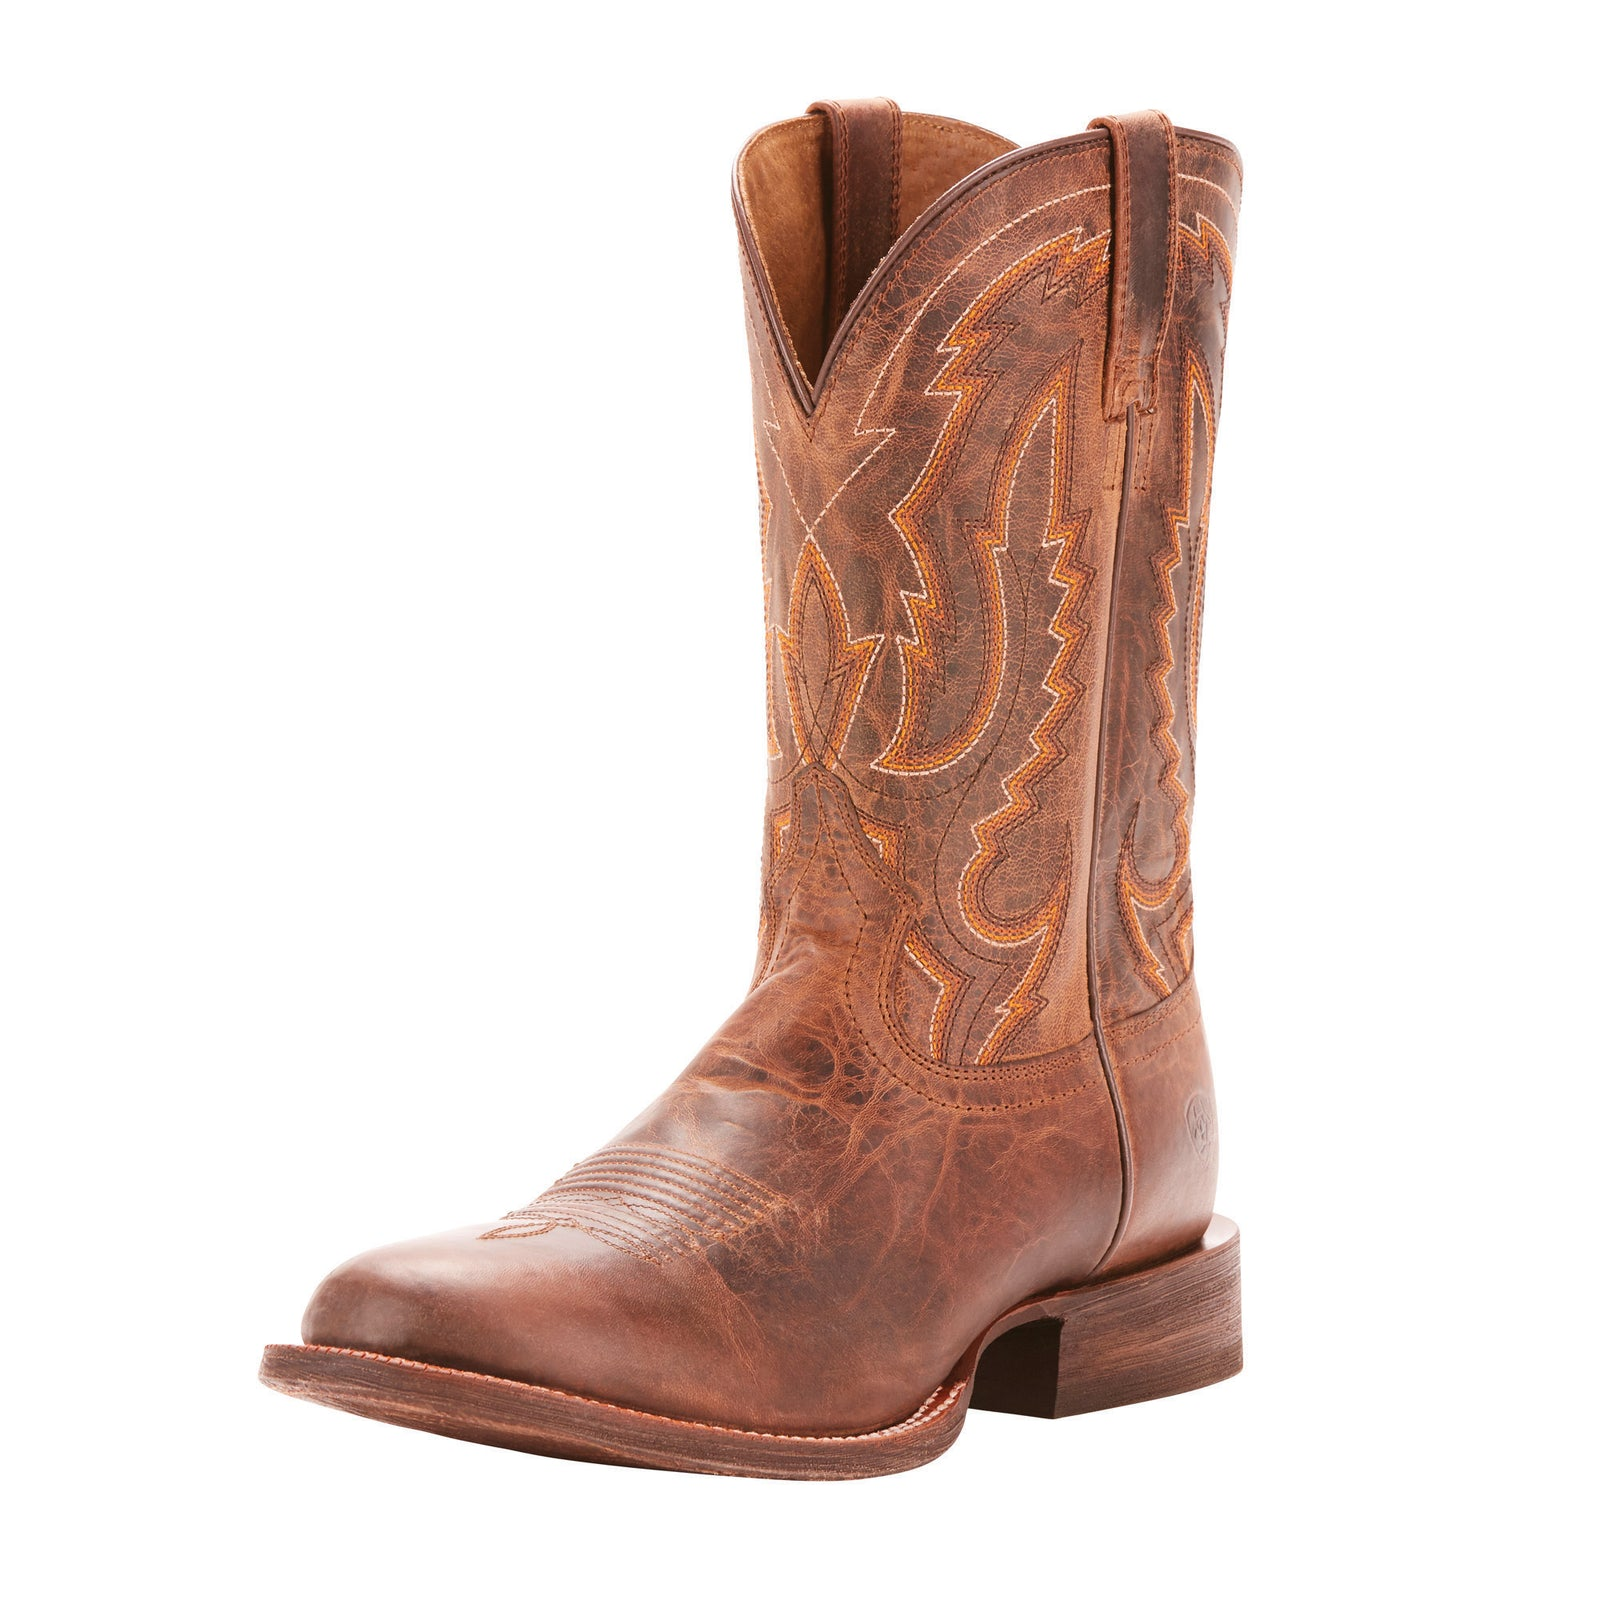 84b818d4067 Men's Ariat Boots at Lazy J Ranch Wear in Texas